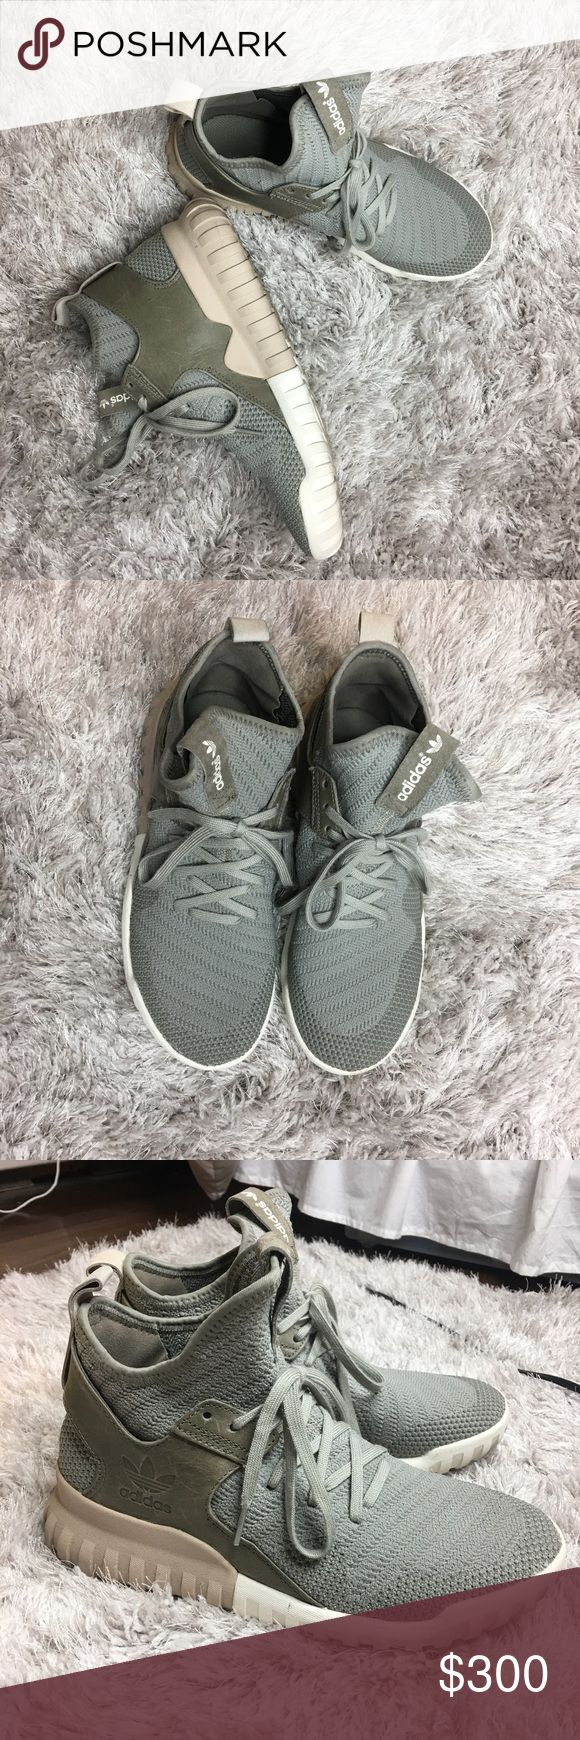 "Adidas Tubular x Primeknit Sneakers ""Sesame"" colorway. VERY RARE ! Men's 7.5 (Women's 9-9.5) Price firm. Shoes Sneakers"